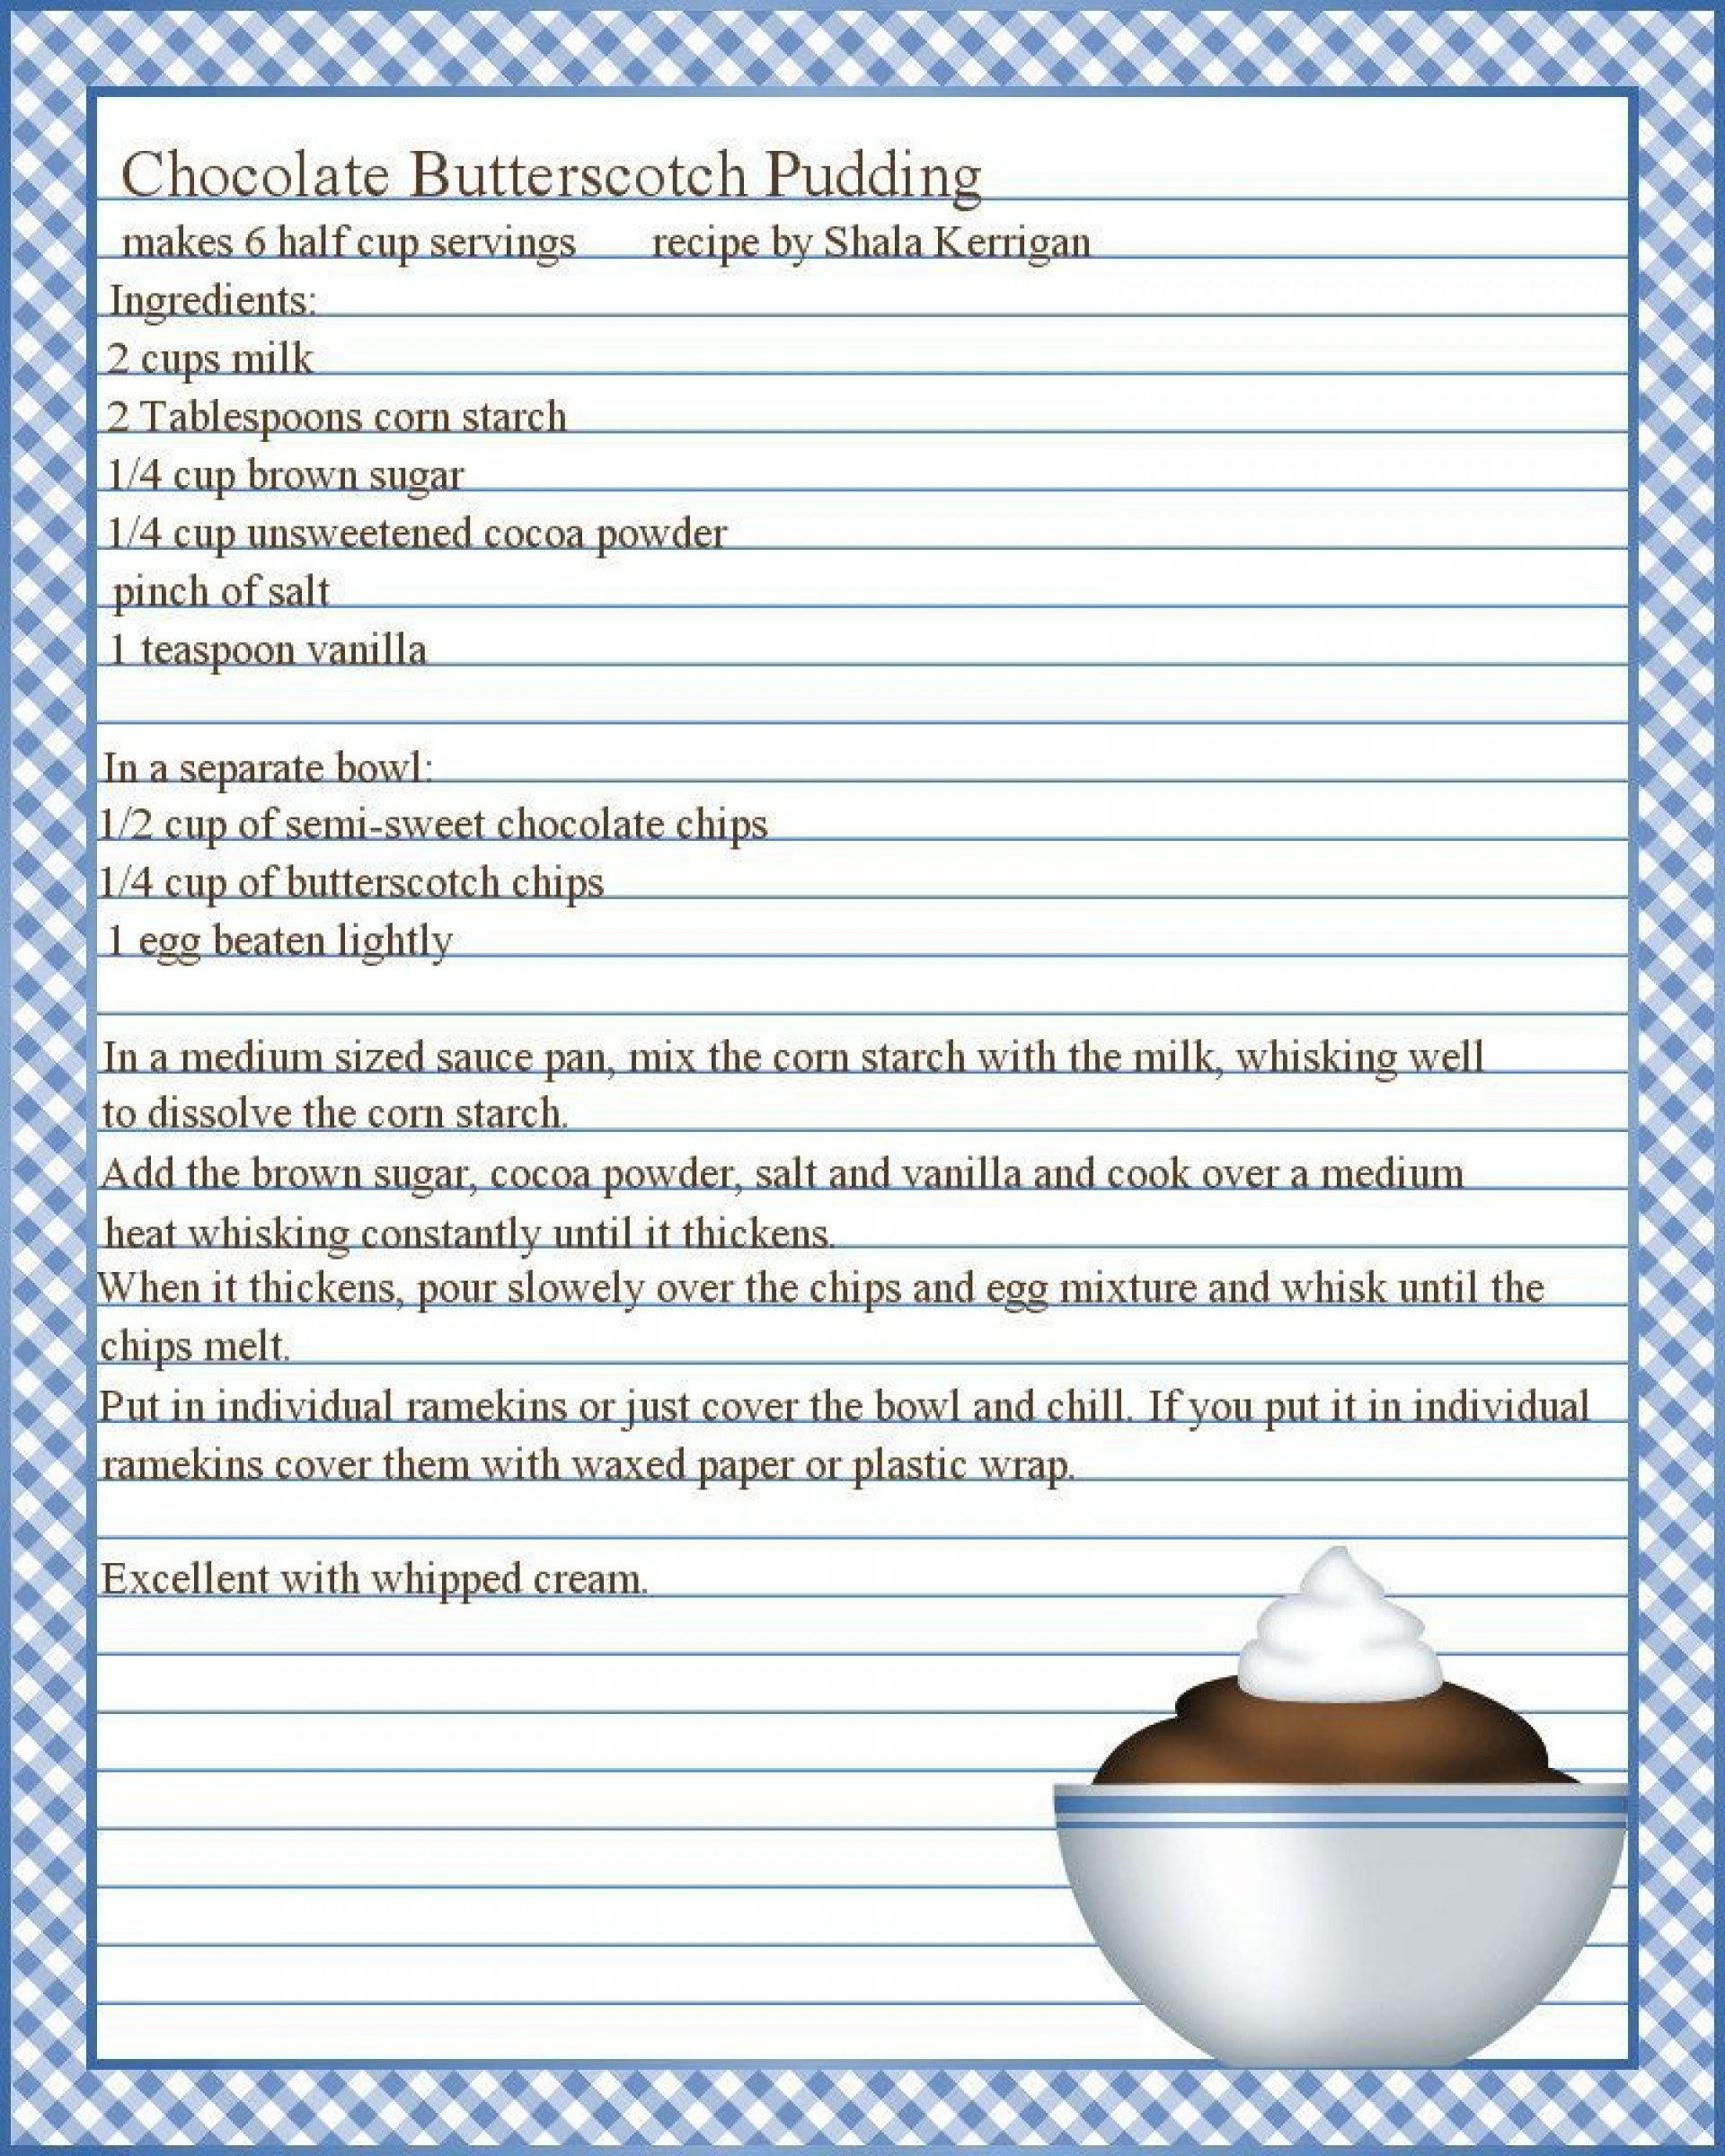 003 Marvelou Free Recipe Template For Word Image  Book Editable Card Microsoft 4x6 Page1920